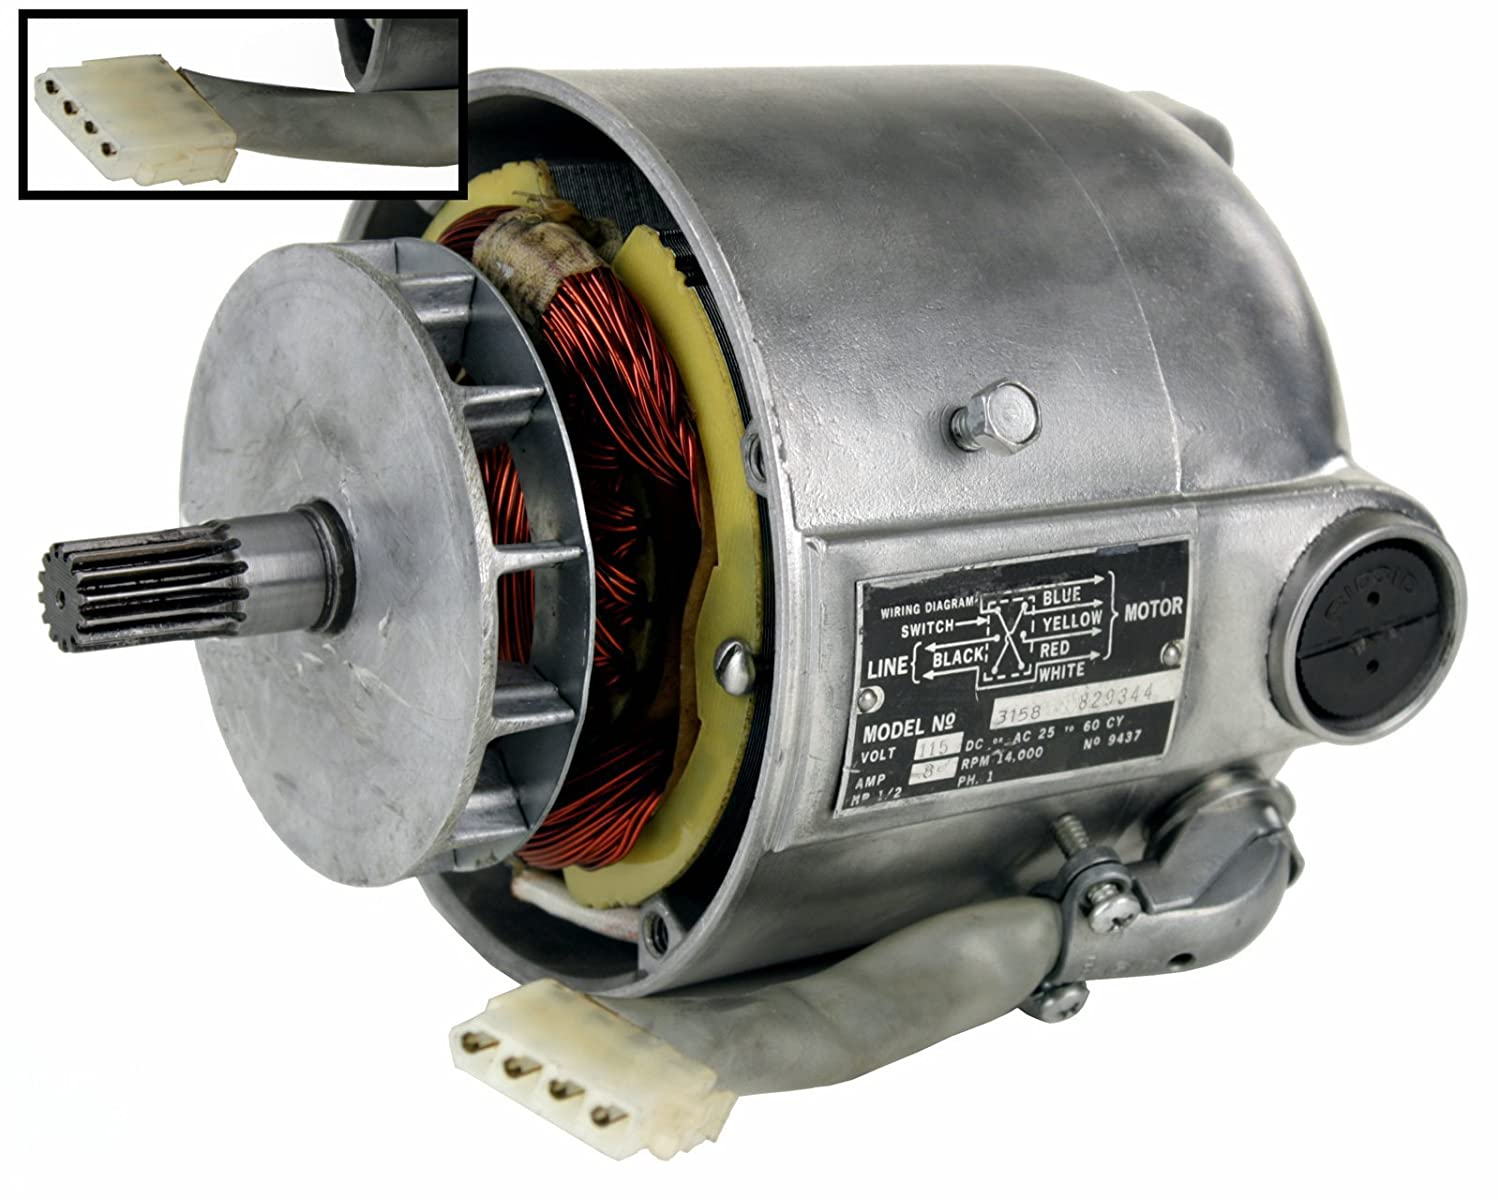 RIDGID 87740 Motor Model 3177 with White Plug (Certified Refurbished) - -  Amazon.com